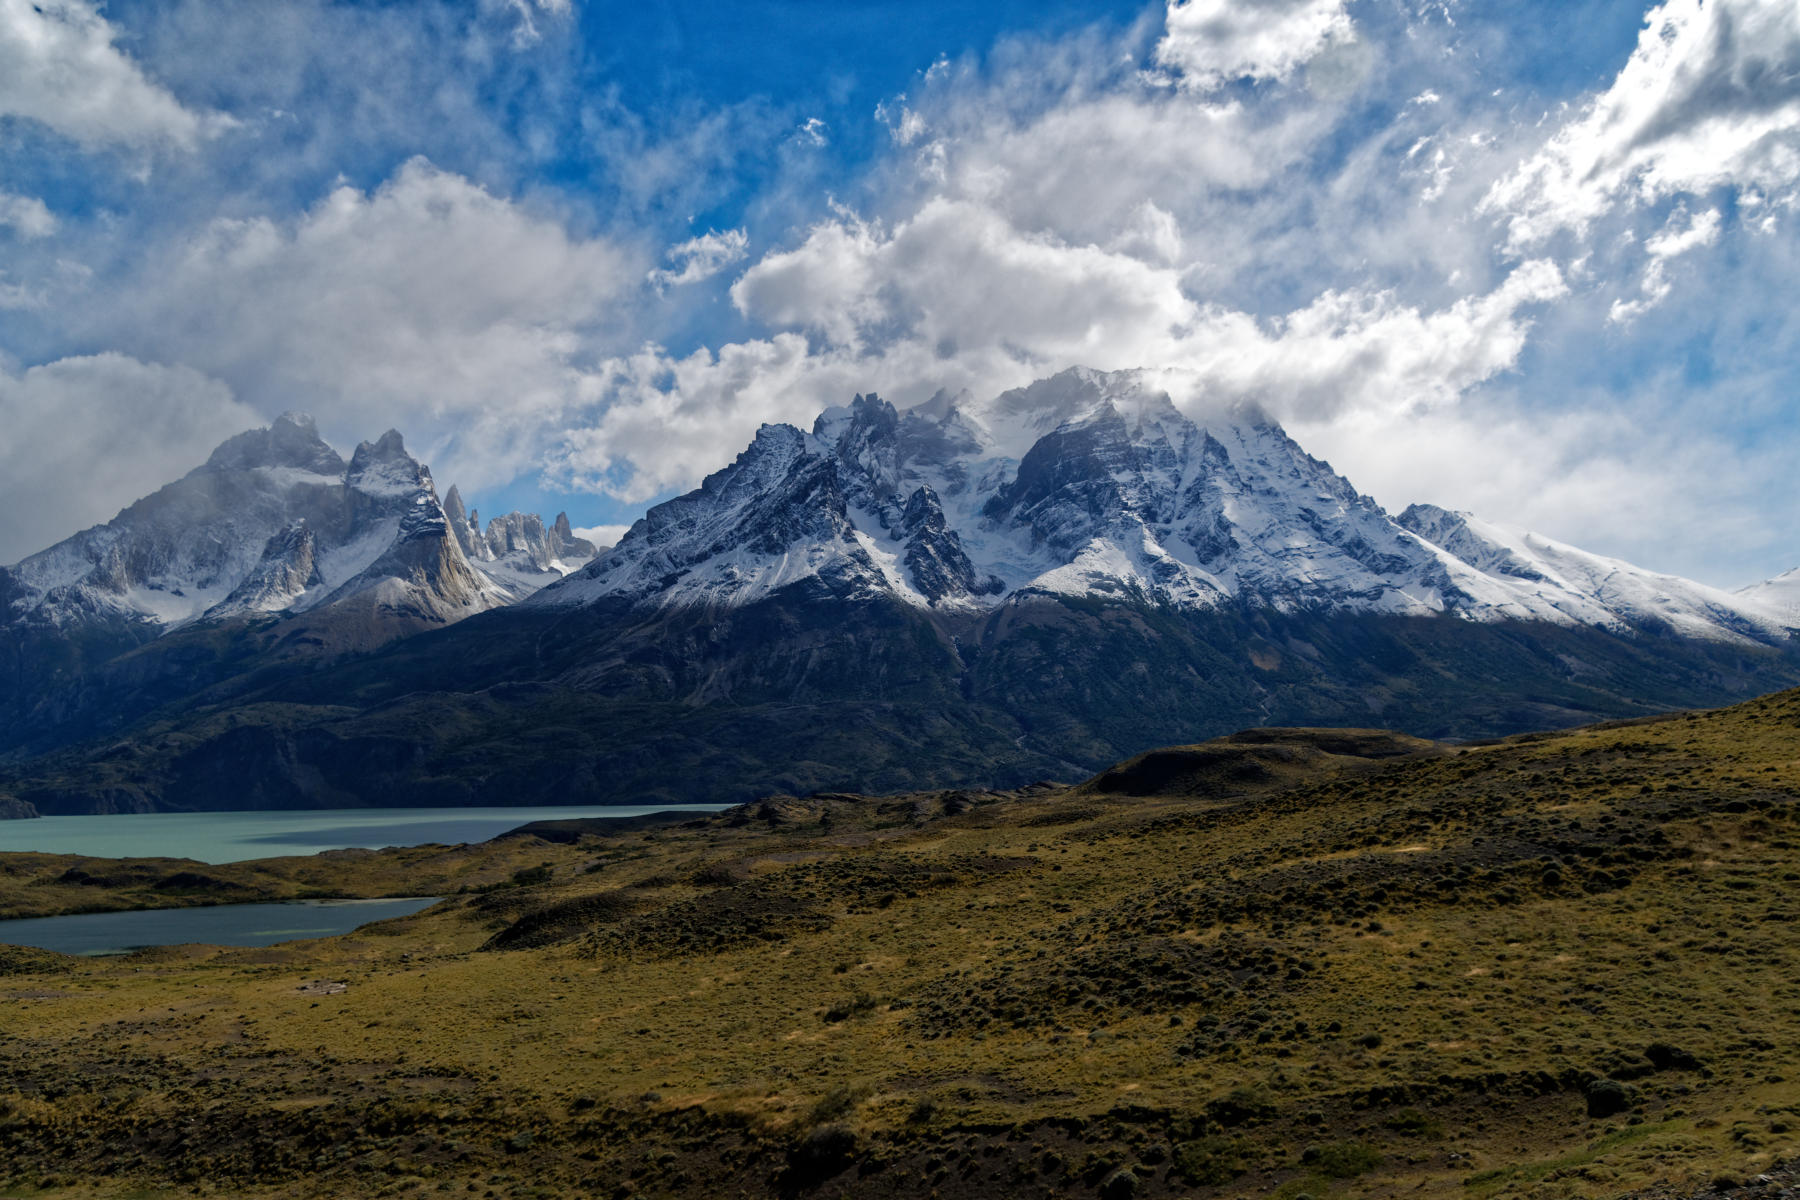 Scenery in Torres del Paine National Park